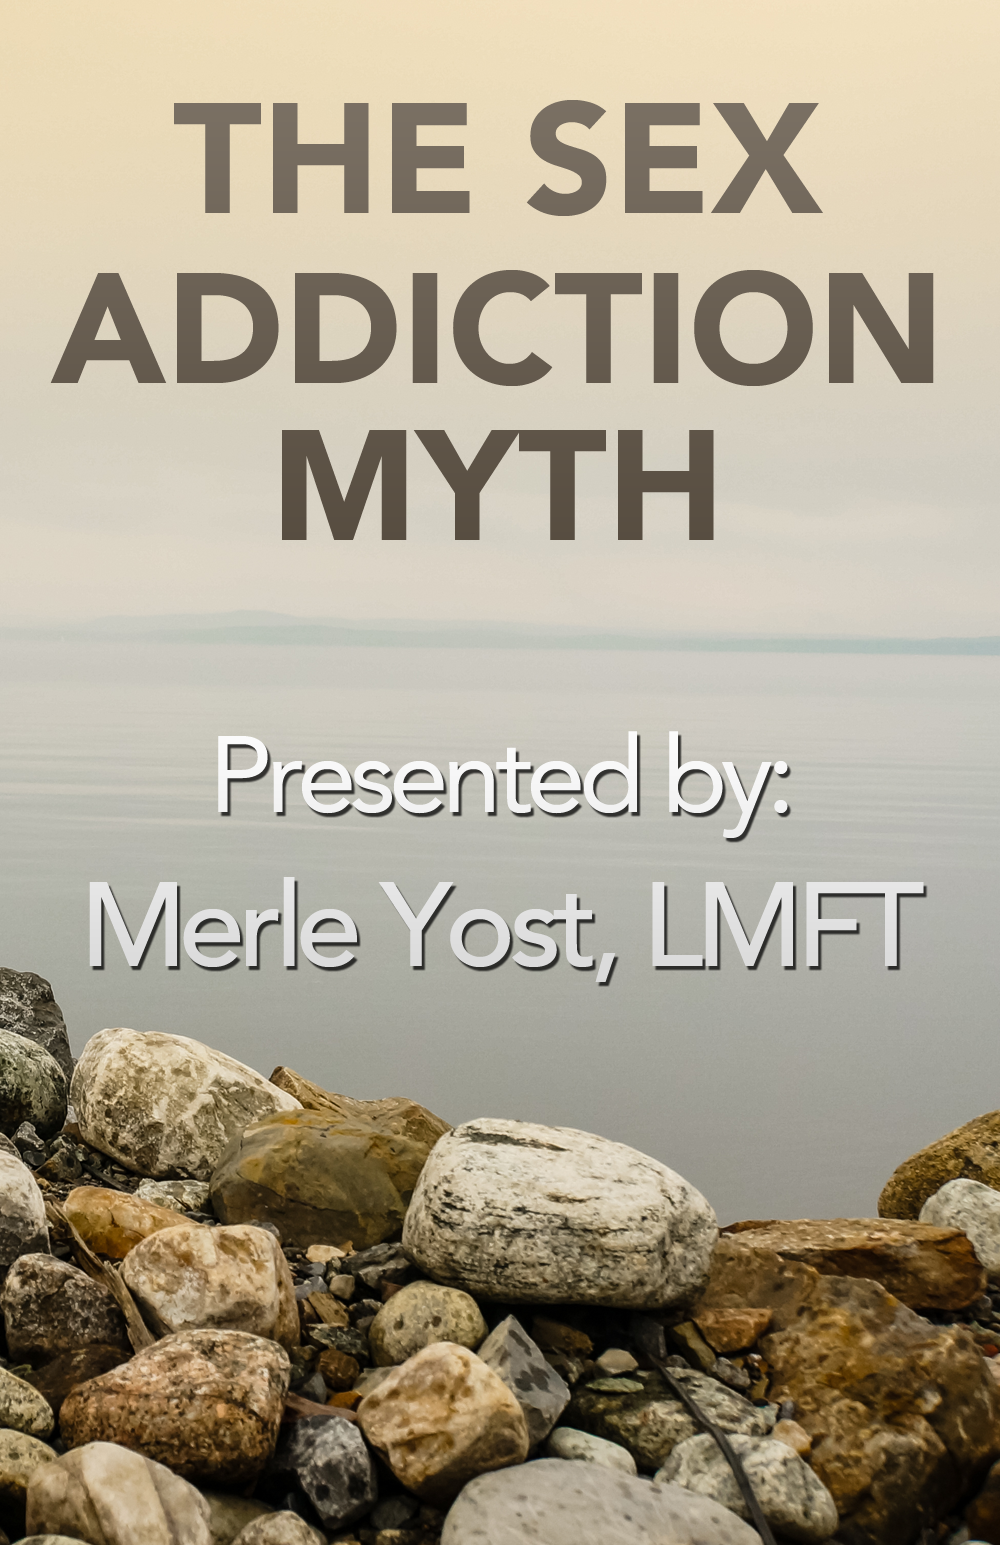 The Sex Addiction Myth Online Workshop Poster